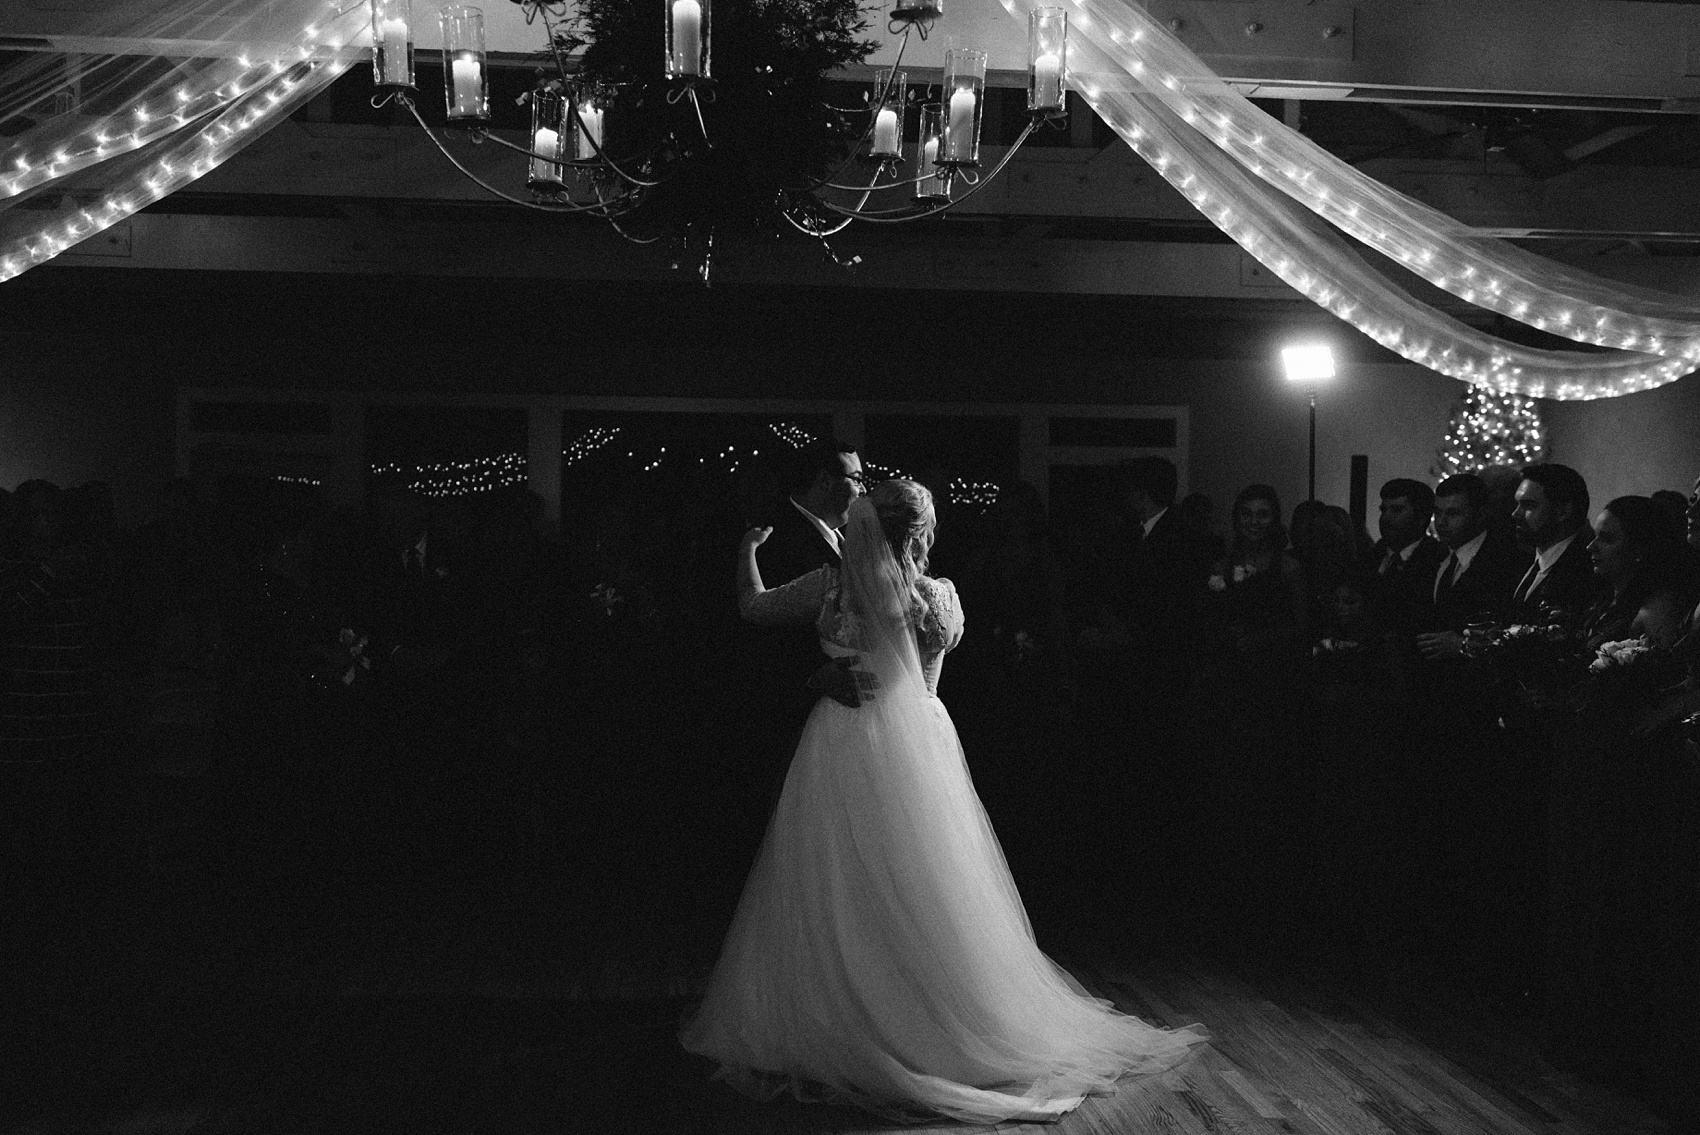 aiken_wedding_photographer_5085.jpg